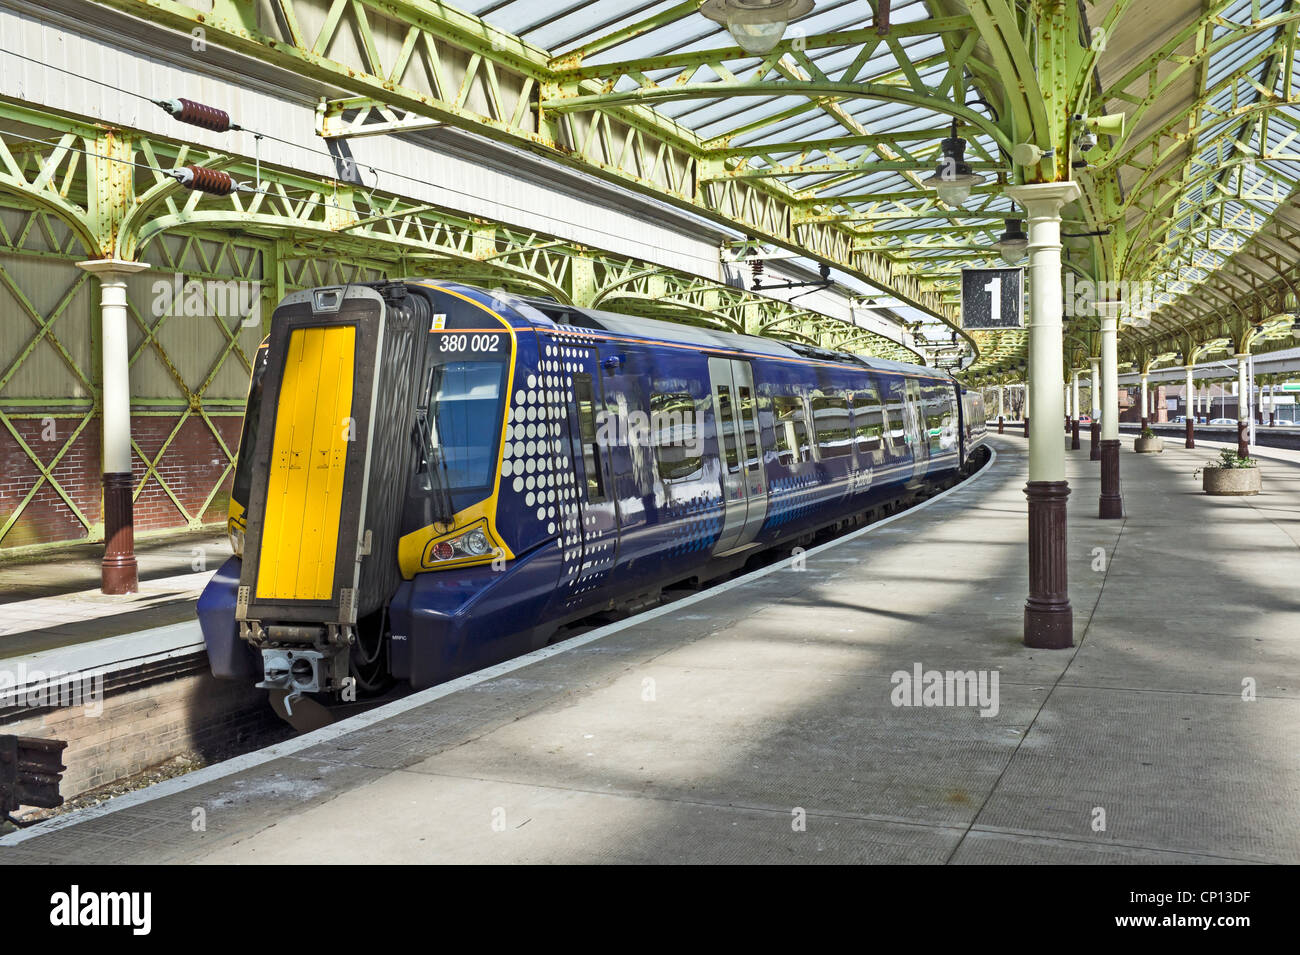 Interior of Wemyss Bay Railway Station in Wemyss Bay Inverclyde Scotland with new Class 380 DMU at the platform - Stock Image